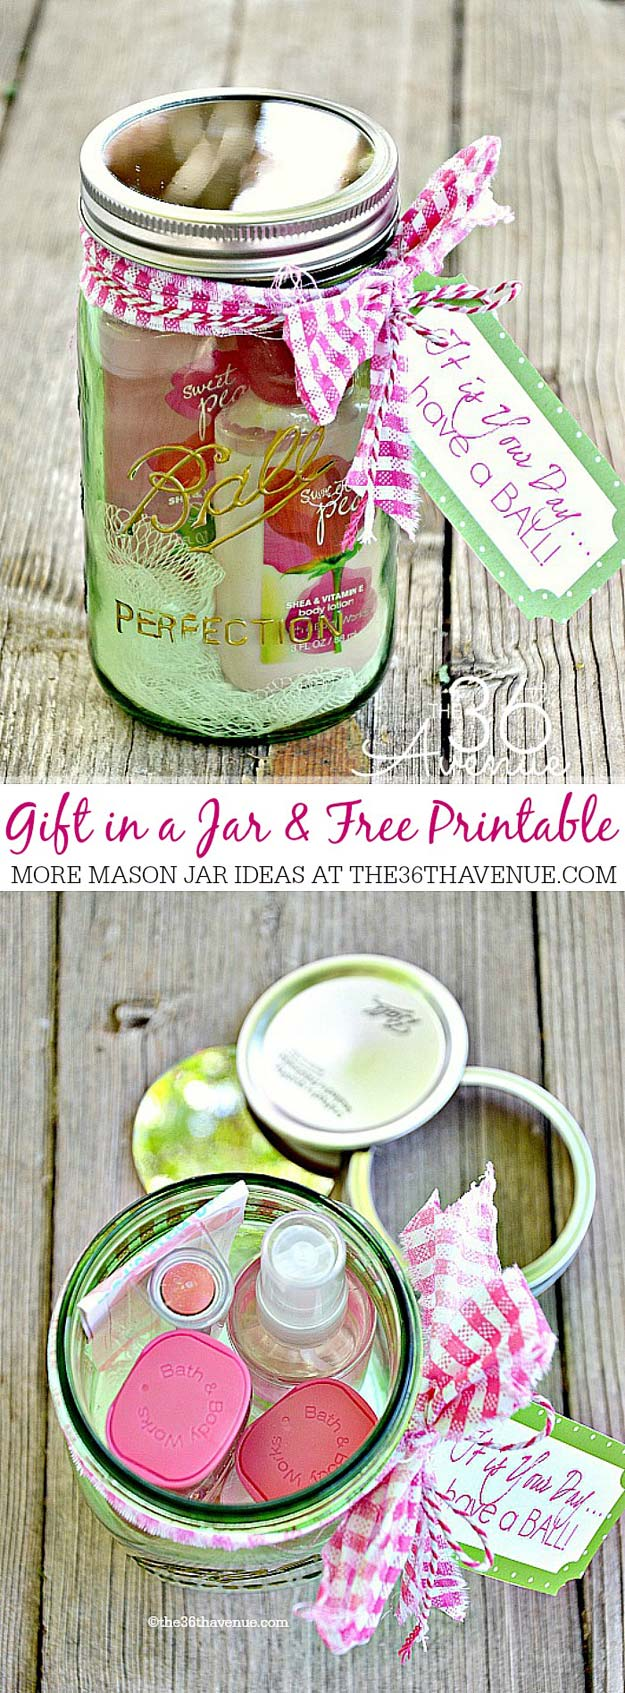 Cute DIY Mason Jar Gift Ideas for Teens - DIY Jar Gift - Best Christmas Presents, Birthday Gifts and Cool Room Decor Ideas for Girls and Boy Teenagers - Fun Crafts and DIY Projects for Snow Globes, Dollar Store Crafts and Valentines for Kids